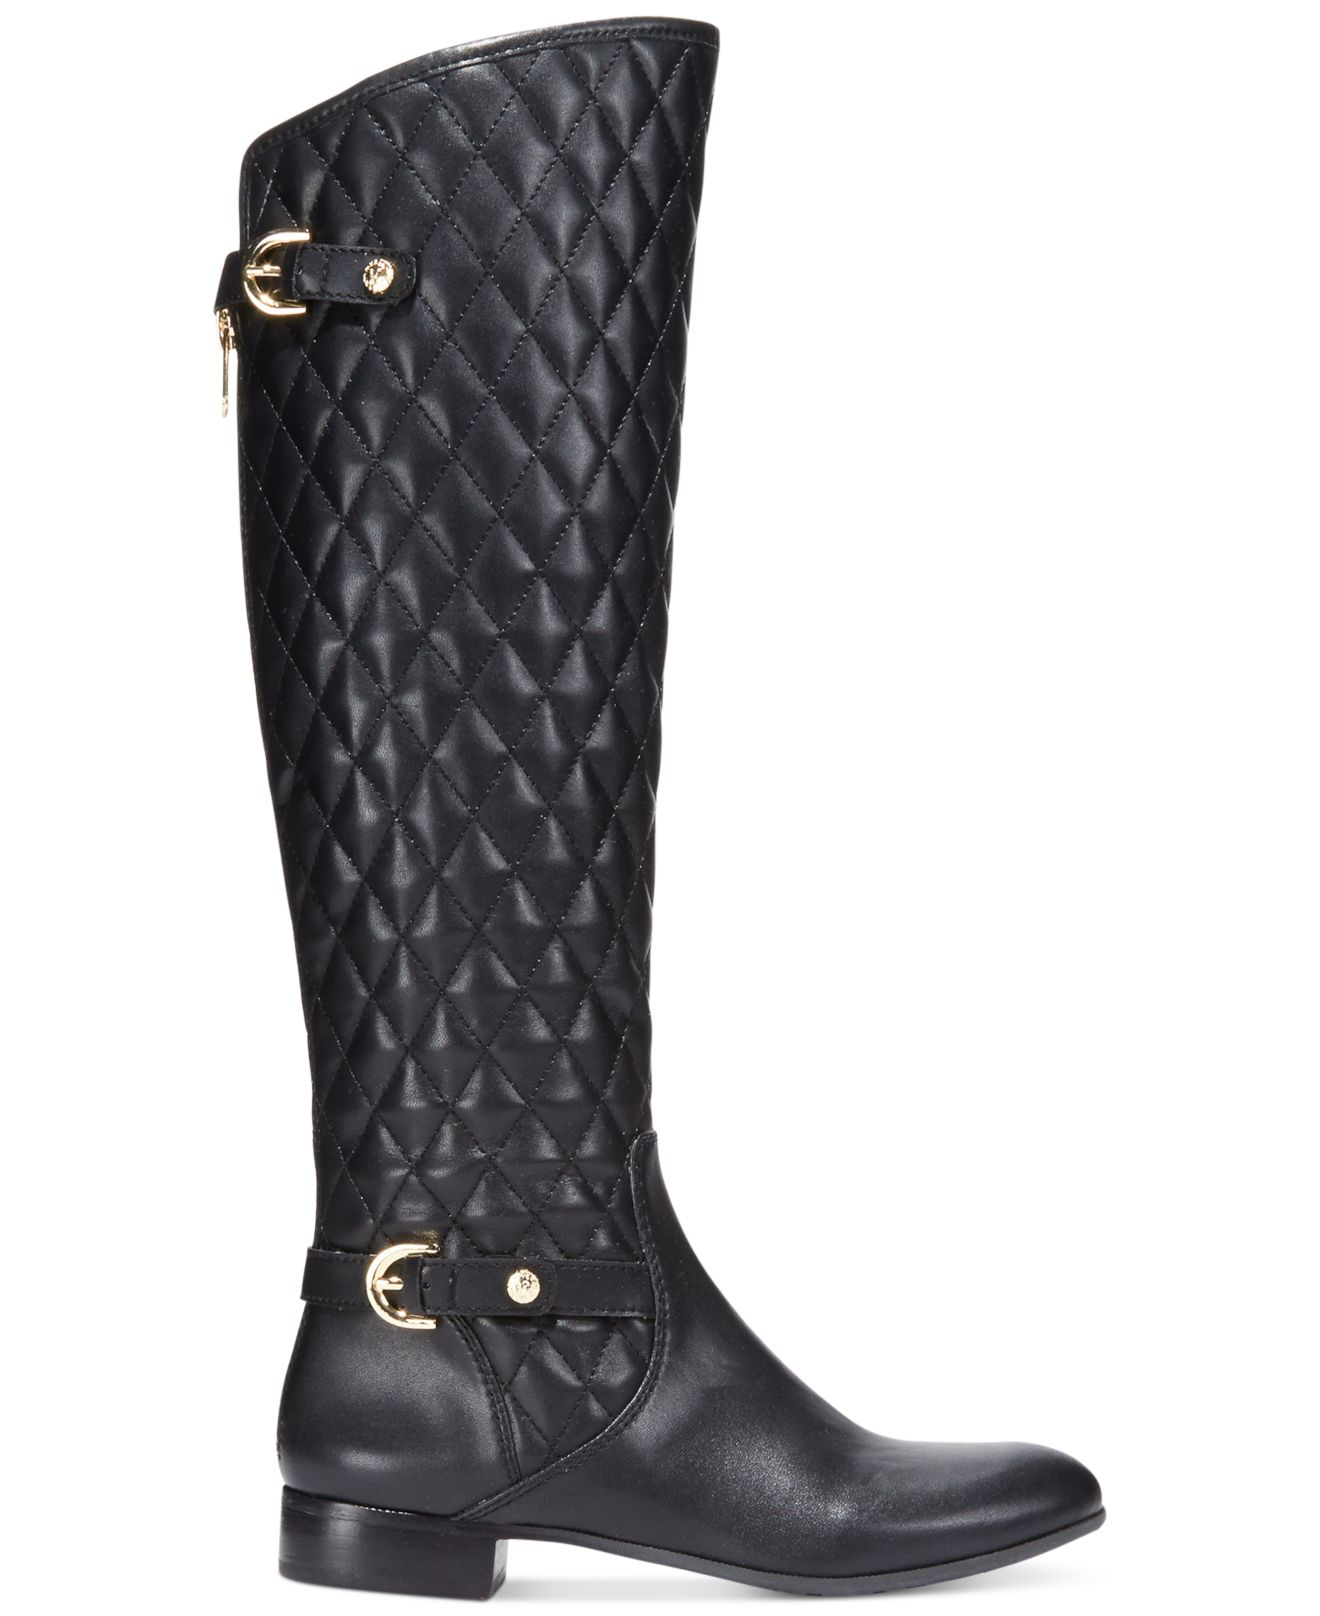 grey gry f women boot knee quilted riding s quilt riverberry olivia high boots